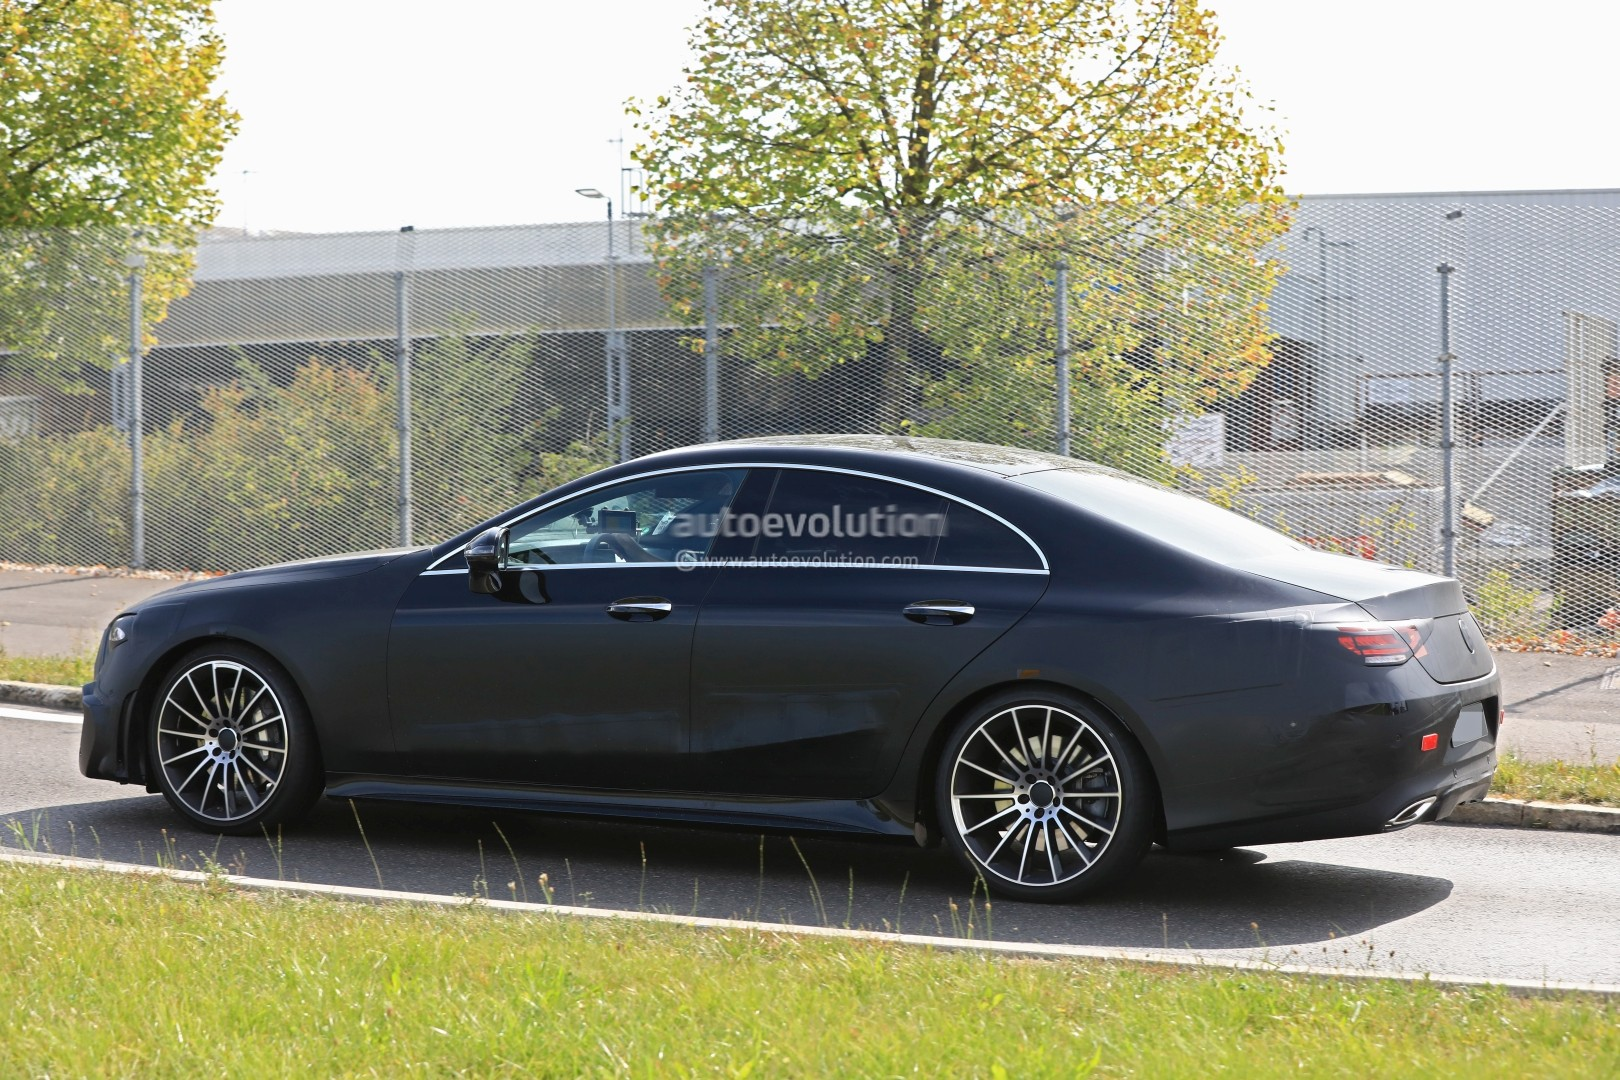 spyshots-production-ready-2018-mercedes-benz-cls-amg-line-has-darth-vader-face_4.jpg